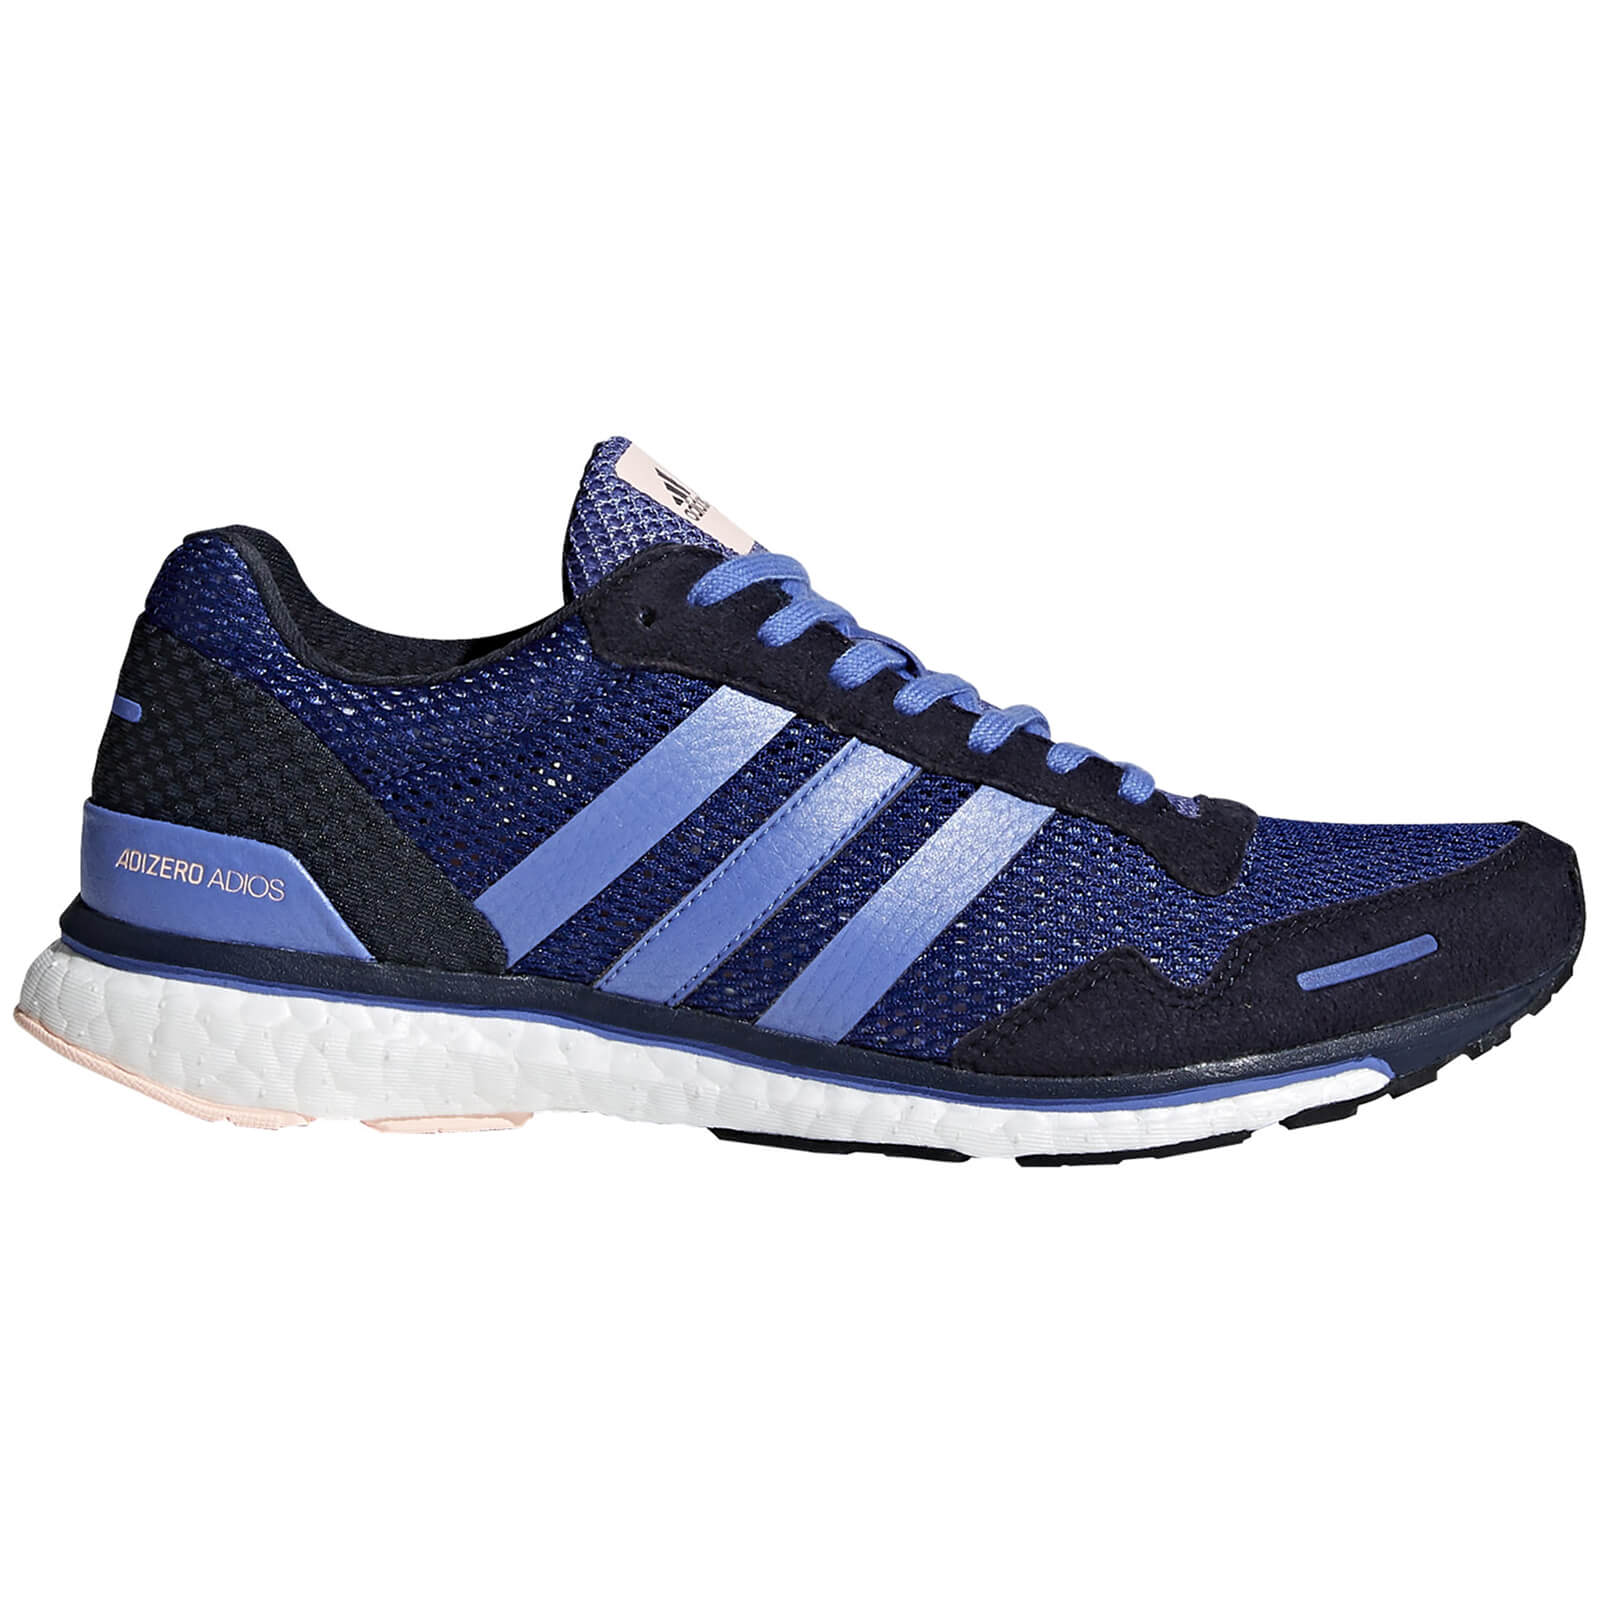 5fd69053f7149 adidas Women s Adizero Adios 3 Running Shoes - Ink